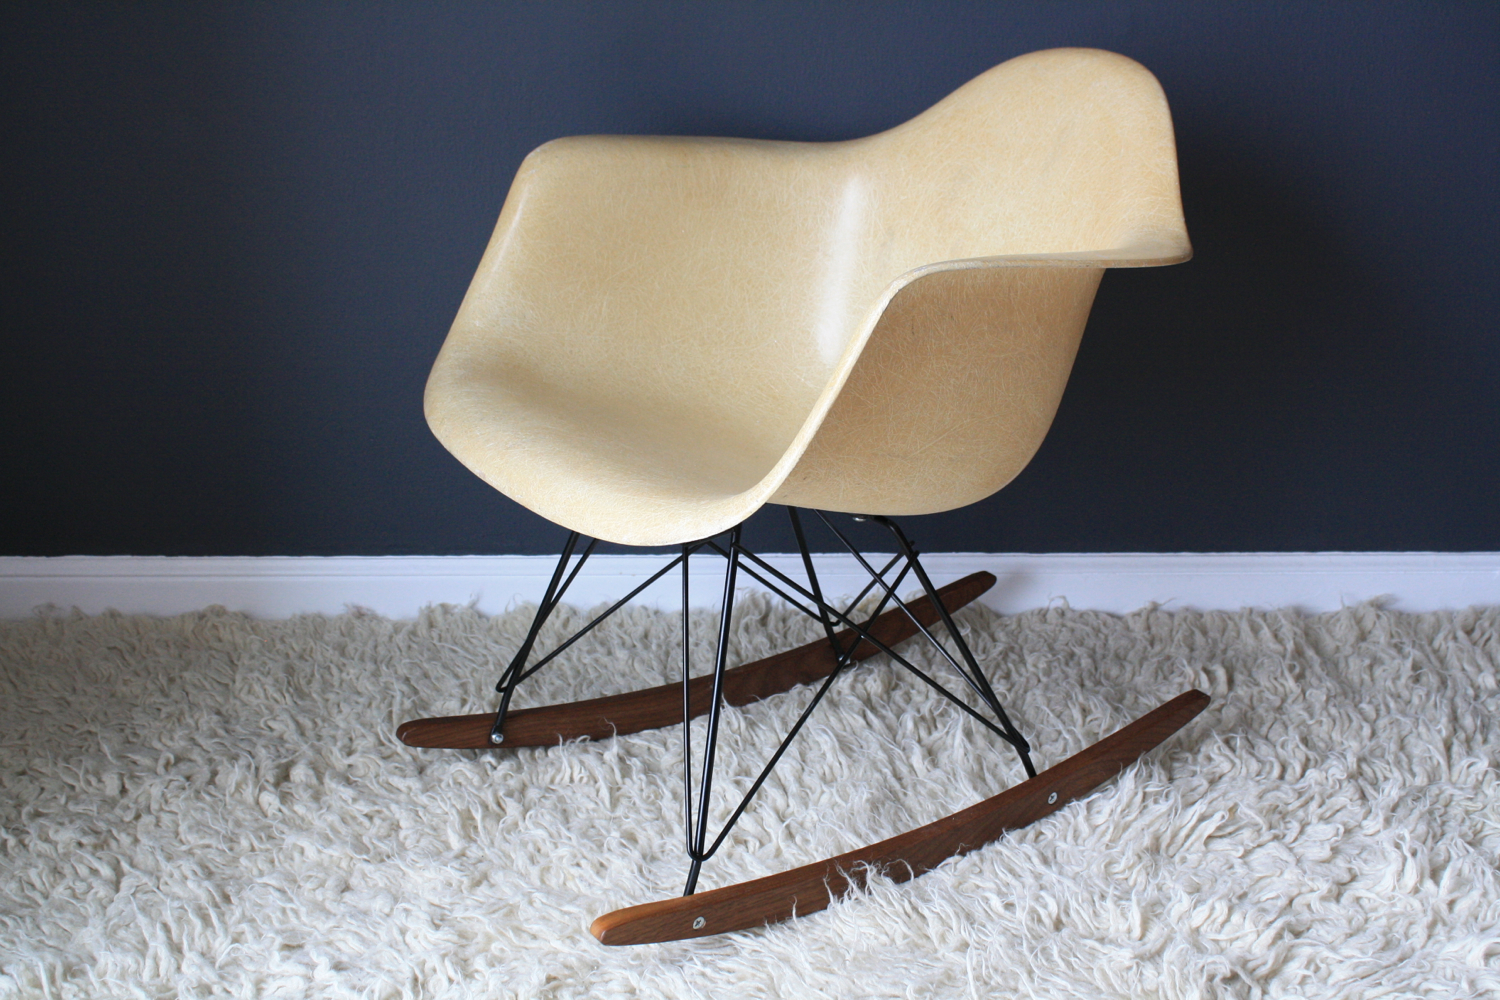 Copy of Vintage Eames Rocker